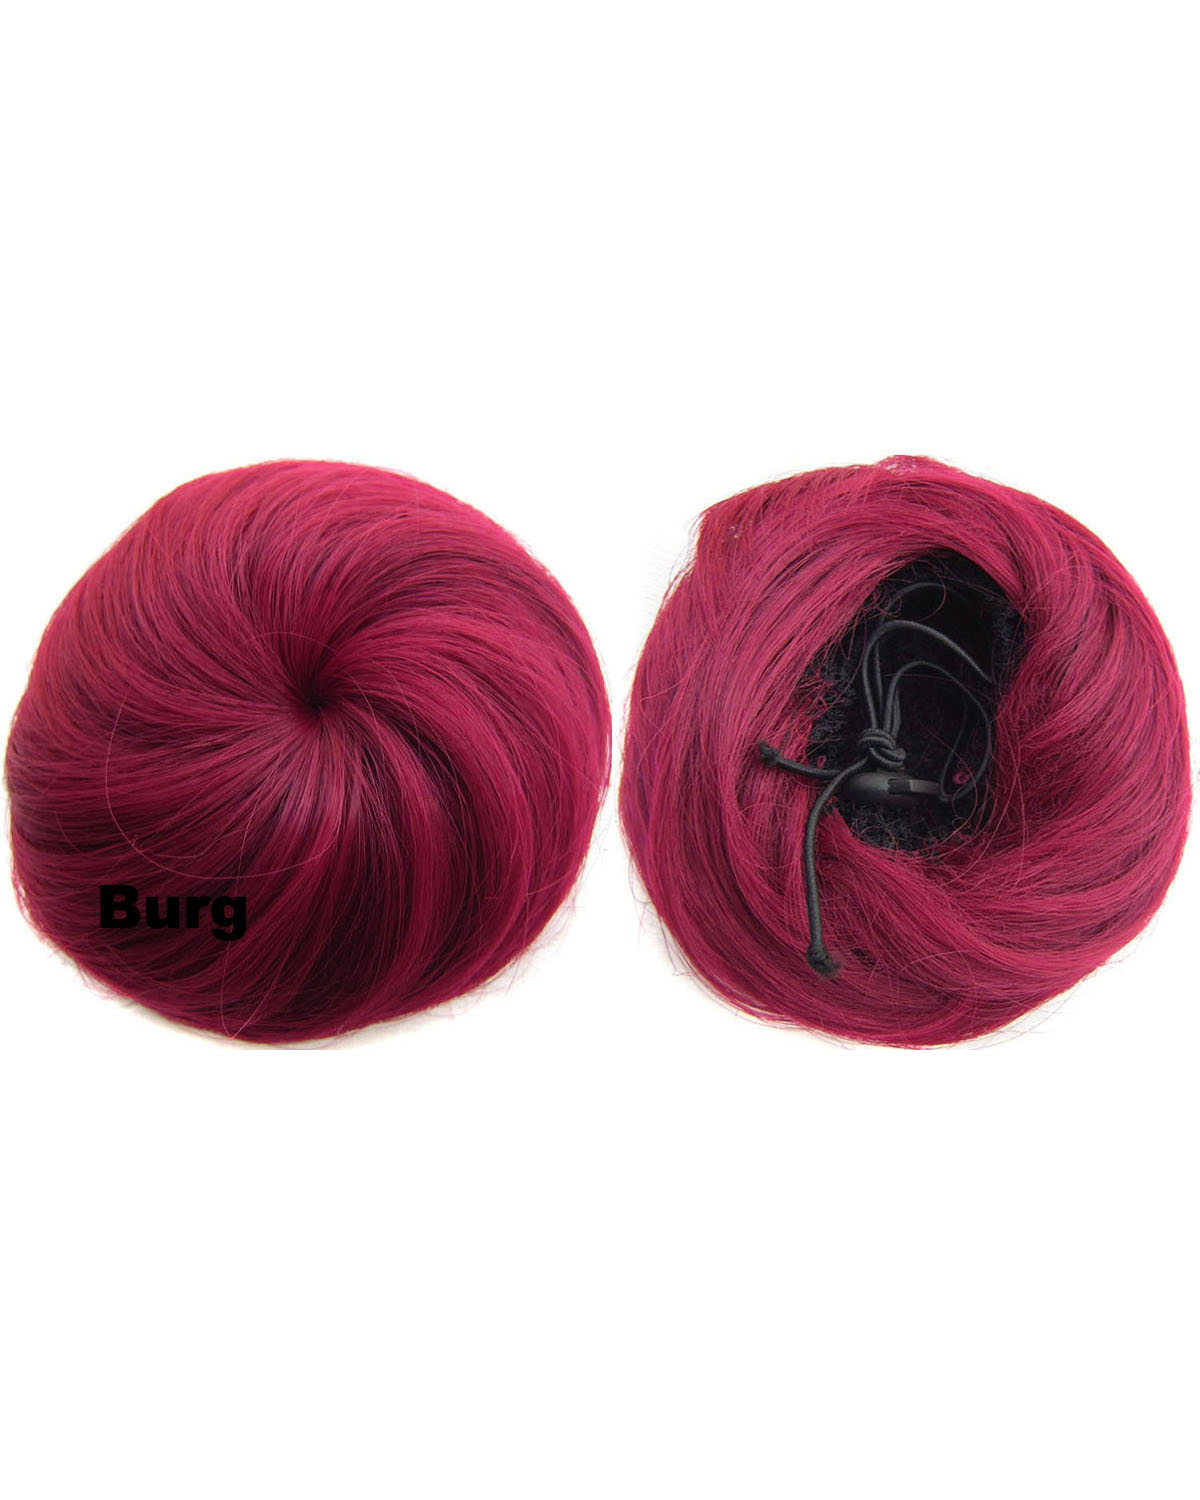 Ladies Refinement Curly and Short Hair Buns Drawstring Synthetic Hair Extension Bride Scrunchies Burg